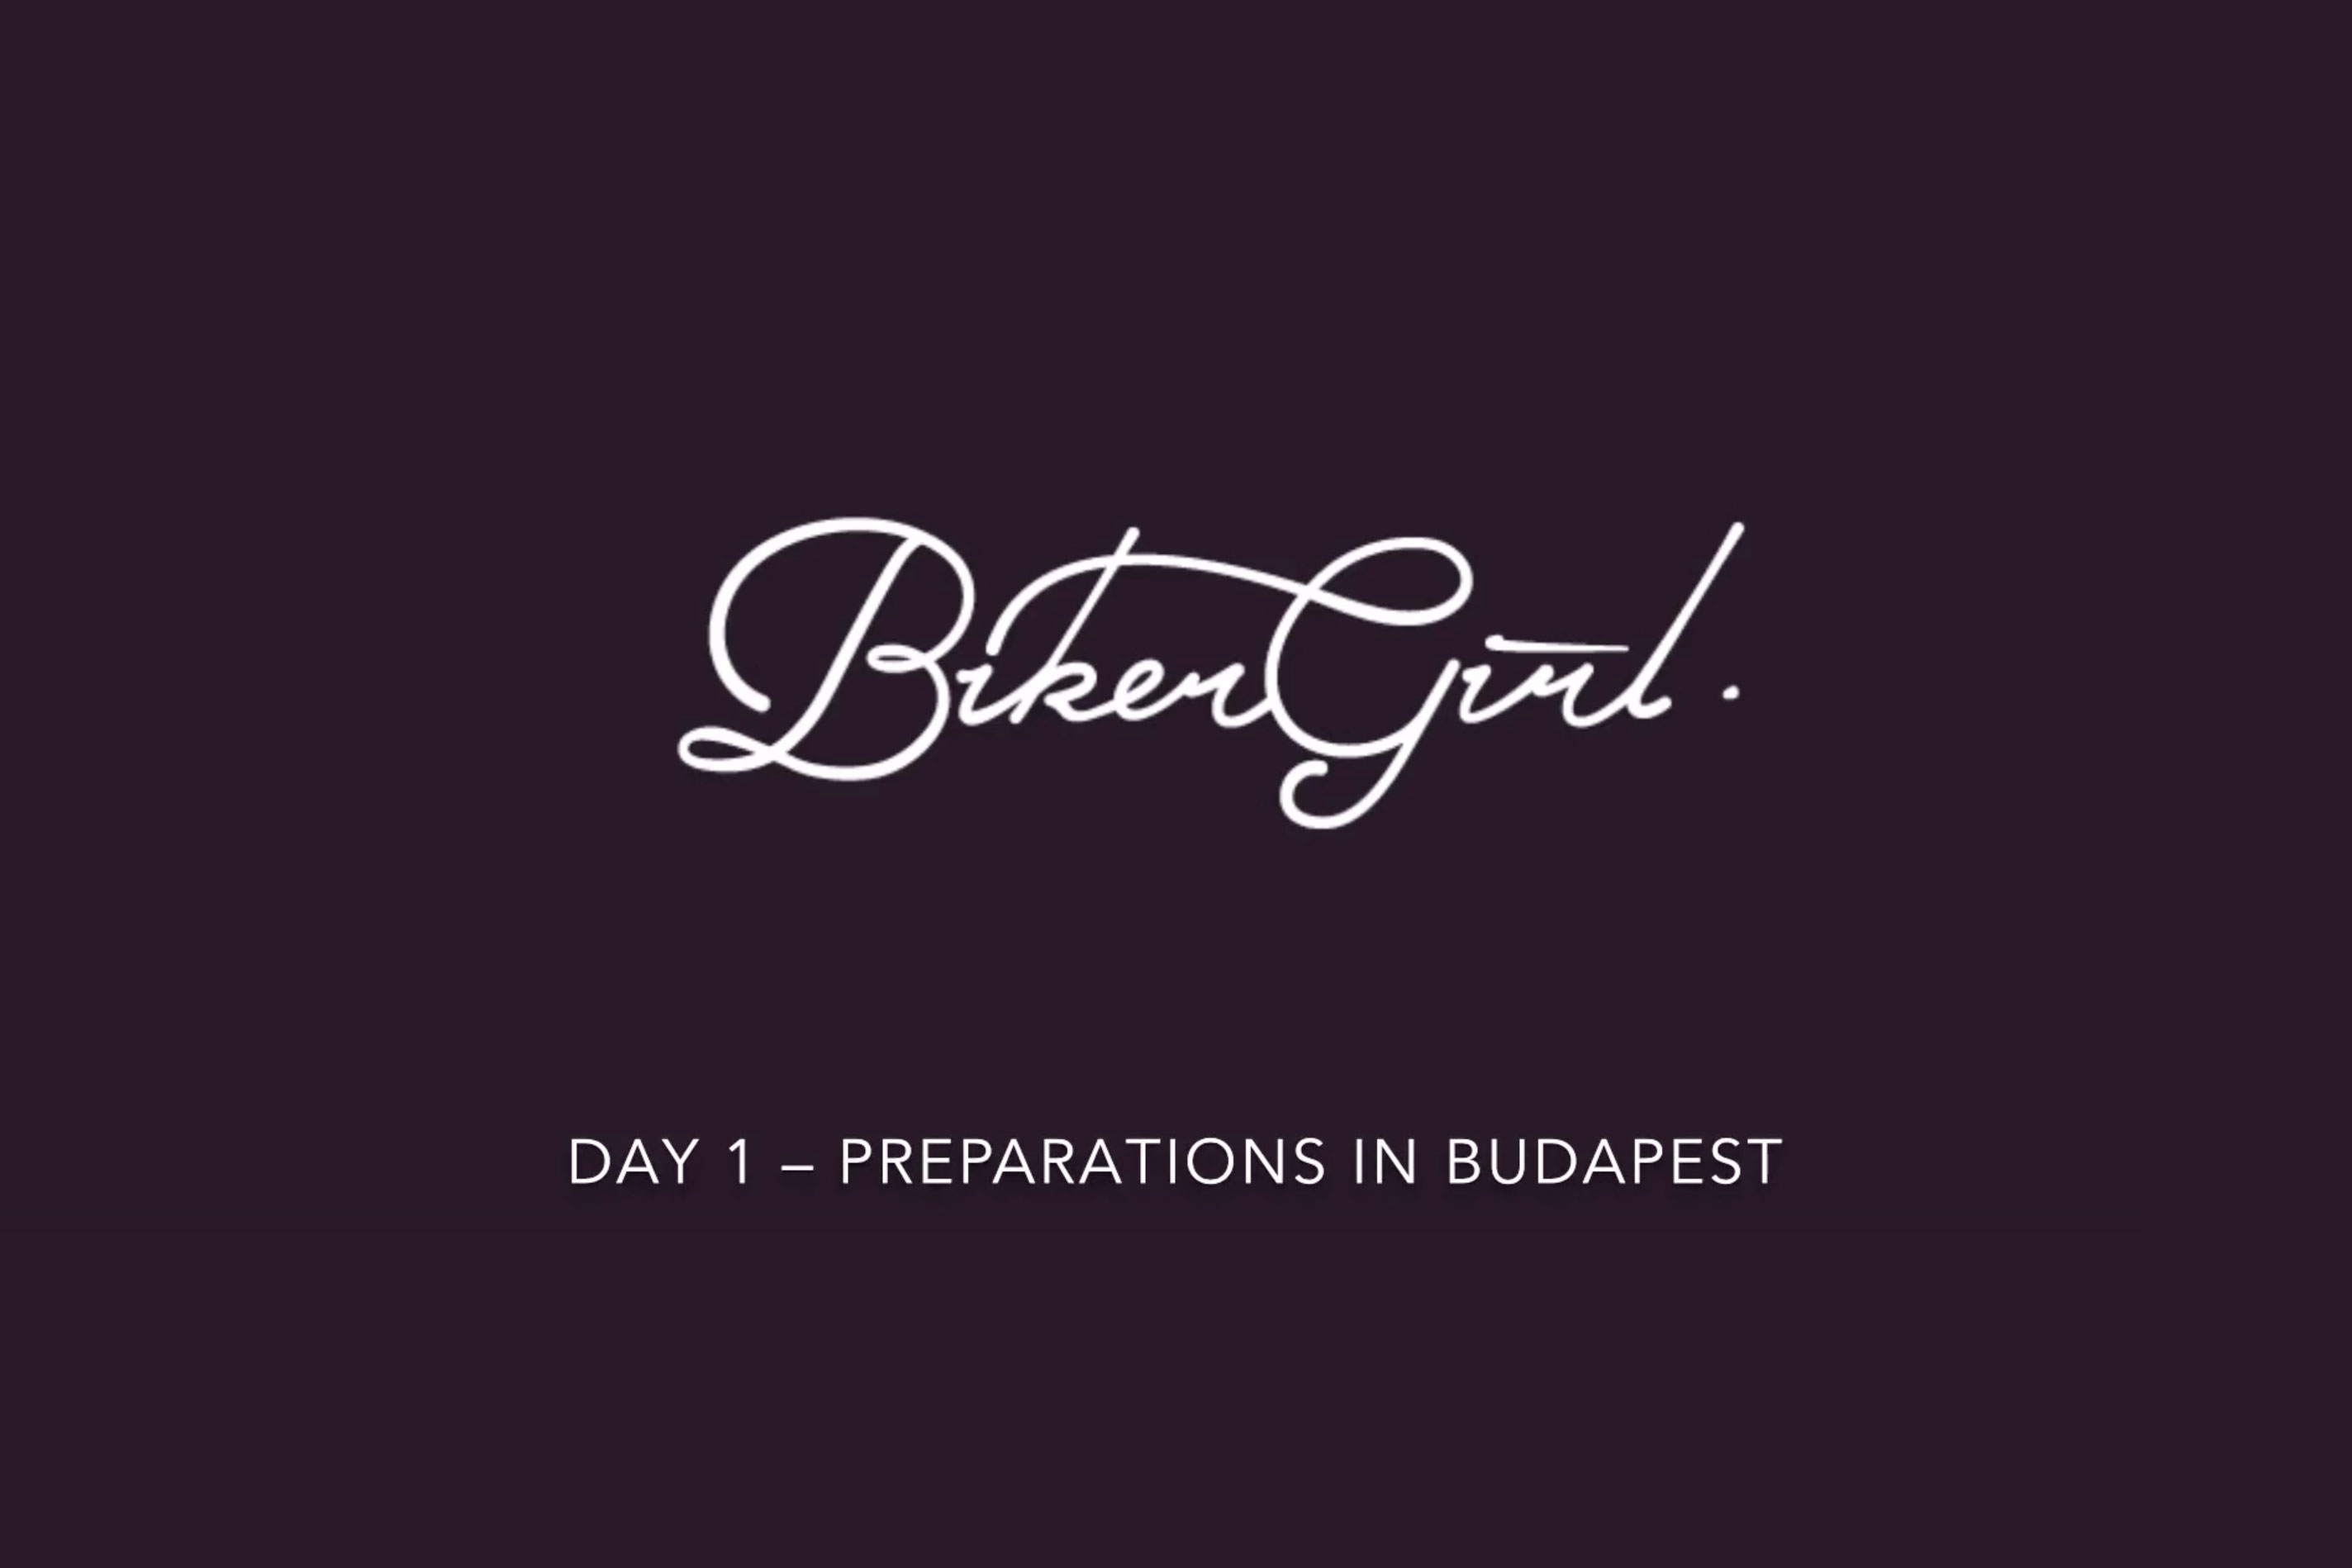 Day 1 – Preparations in Budapest